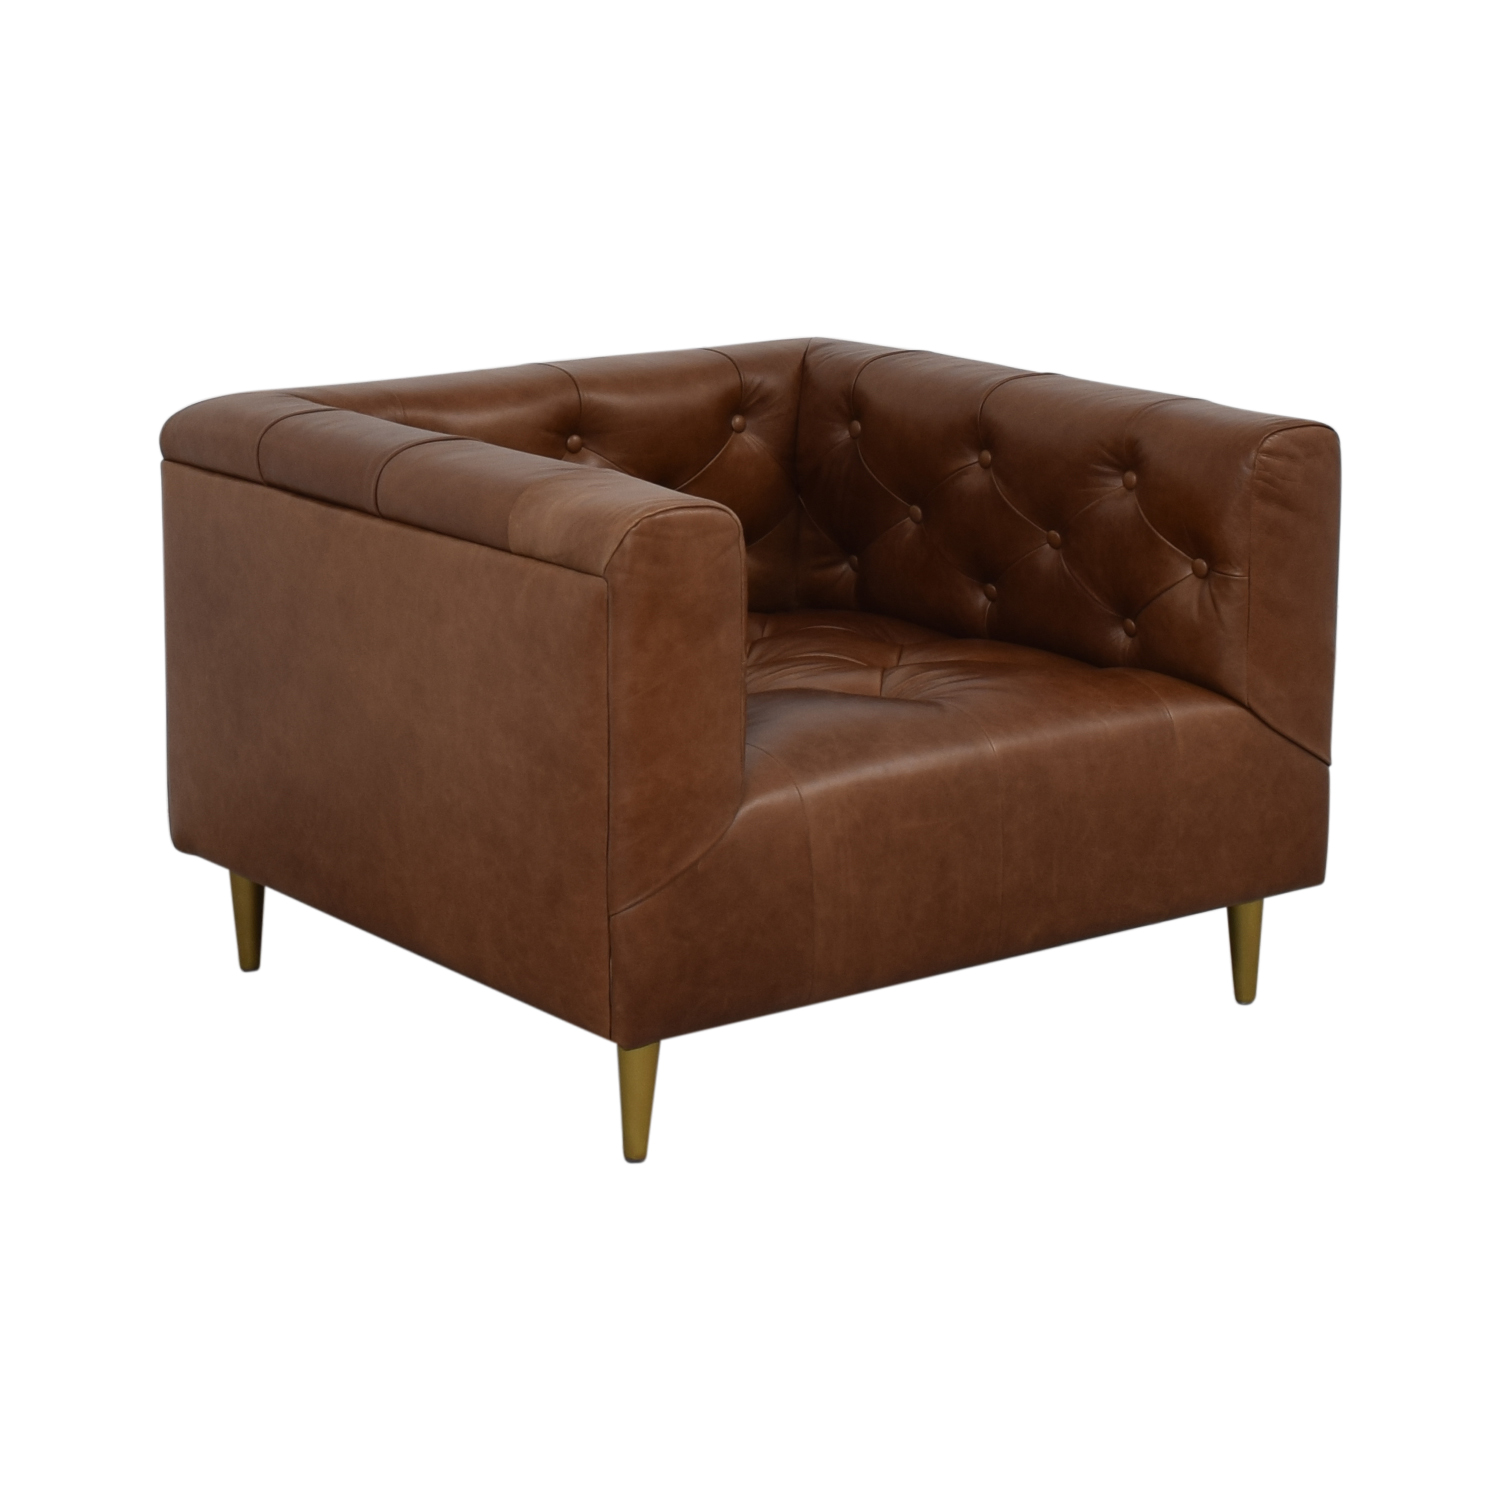 buy Interior Define Ms. Chesterfield Cognac Tufted Accent Chair online